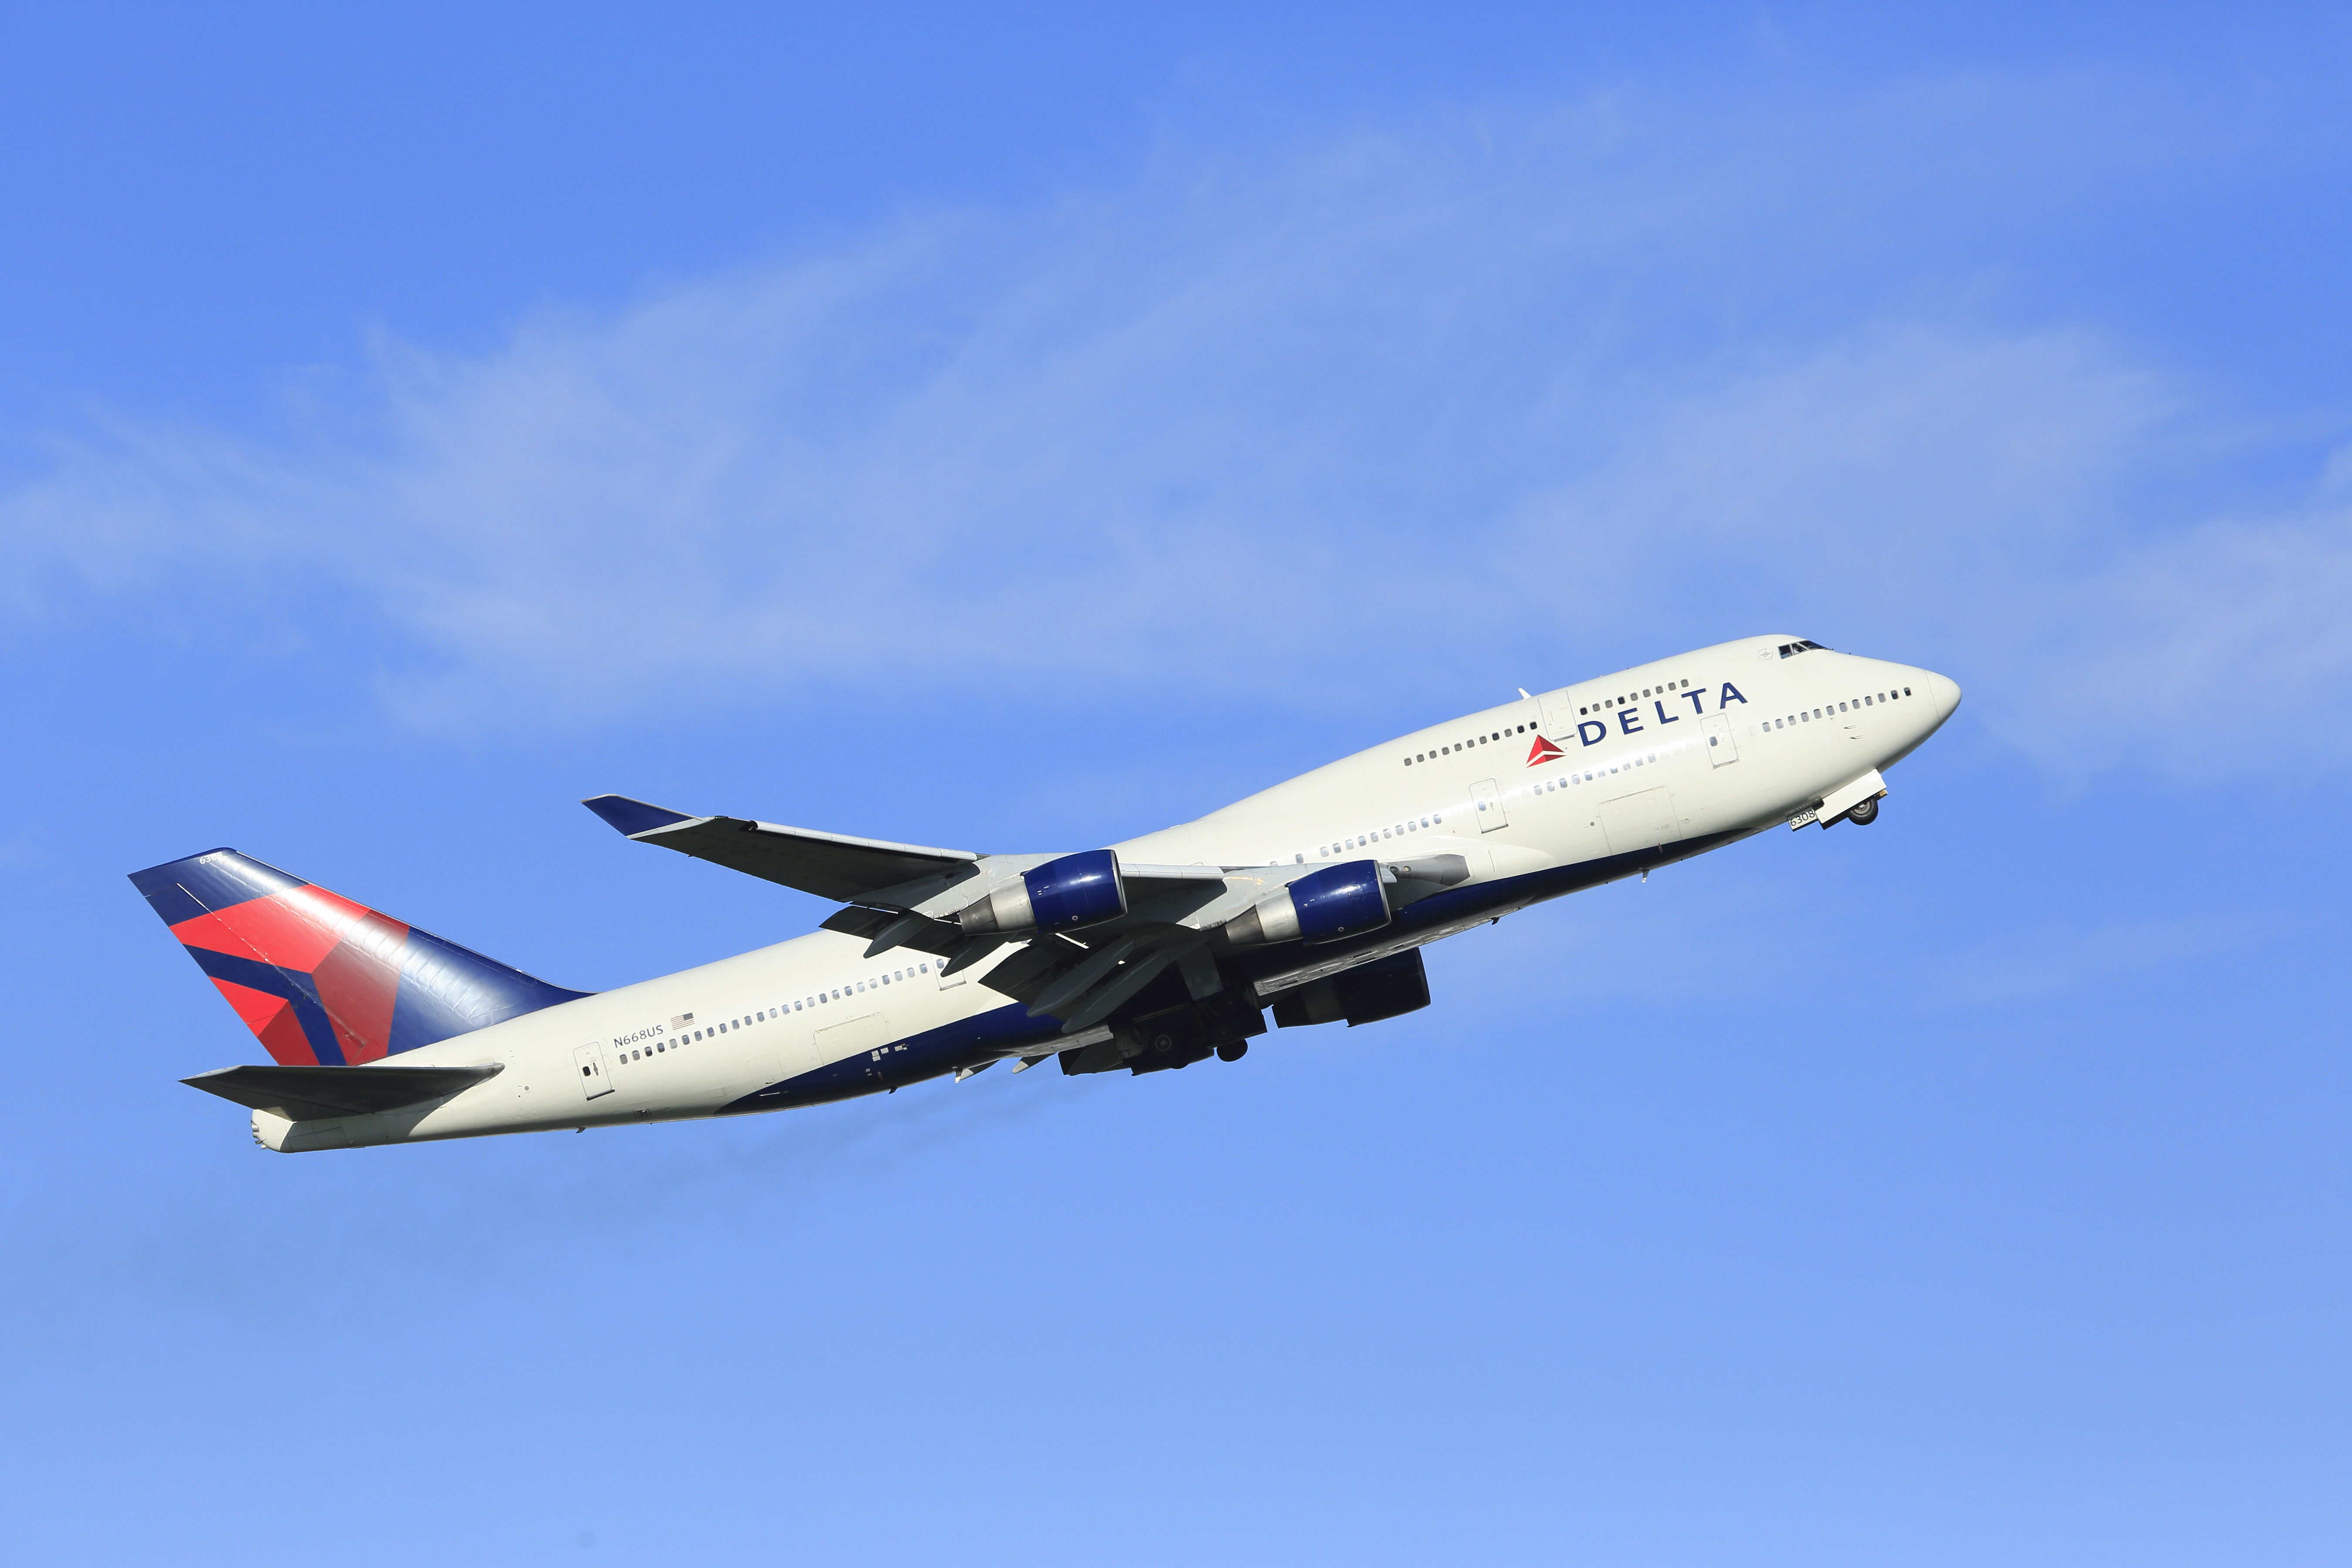 A Delta Airlines plane is seen flying in Japan.